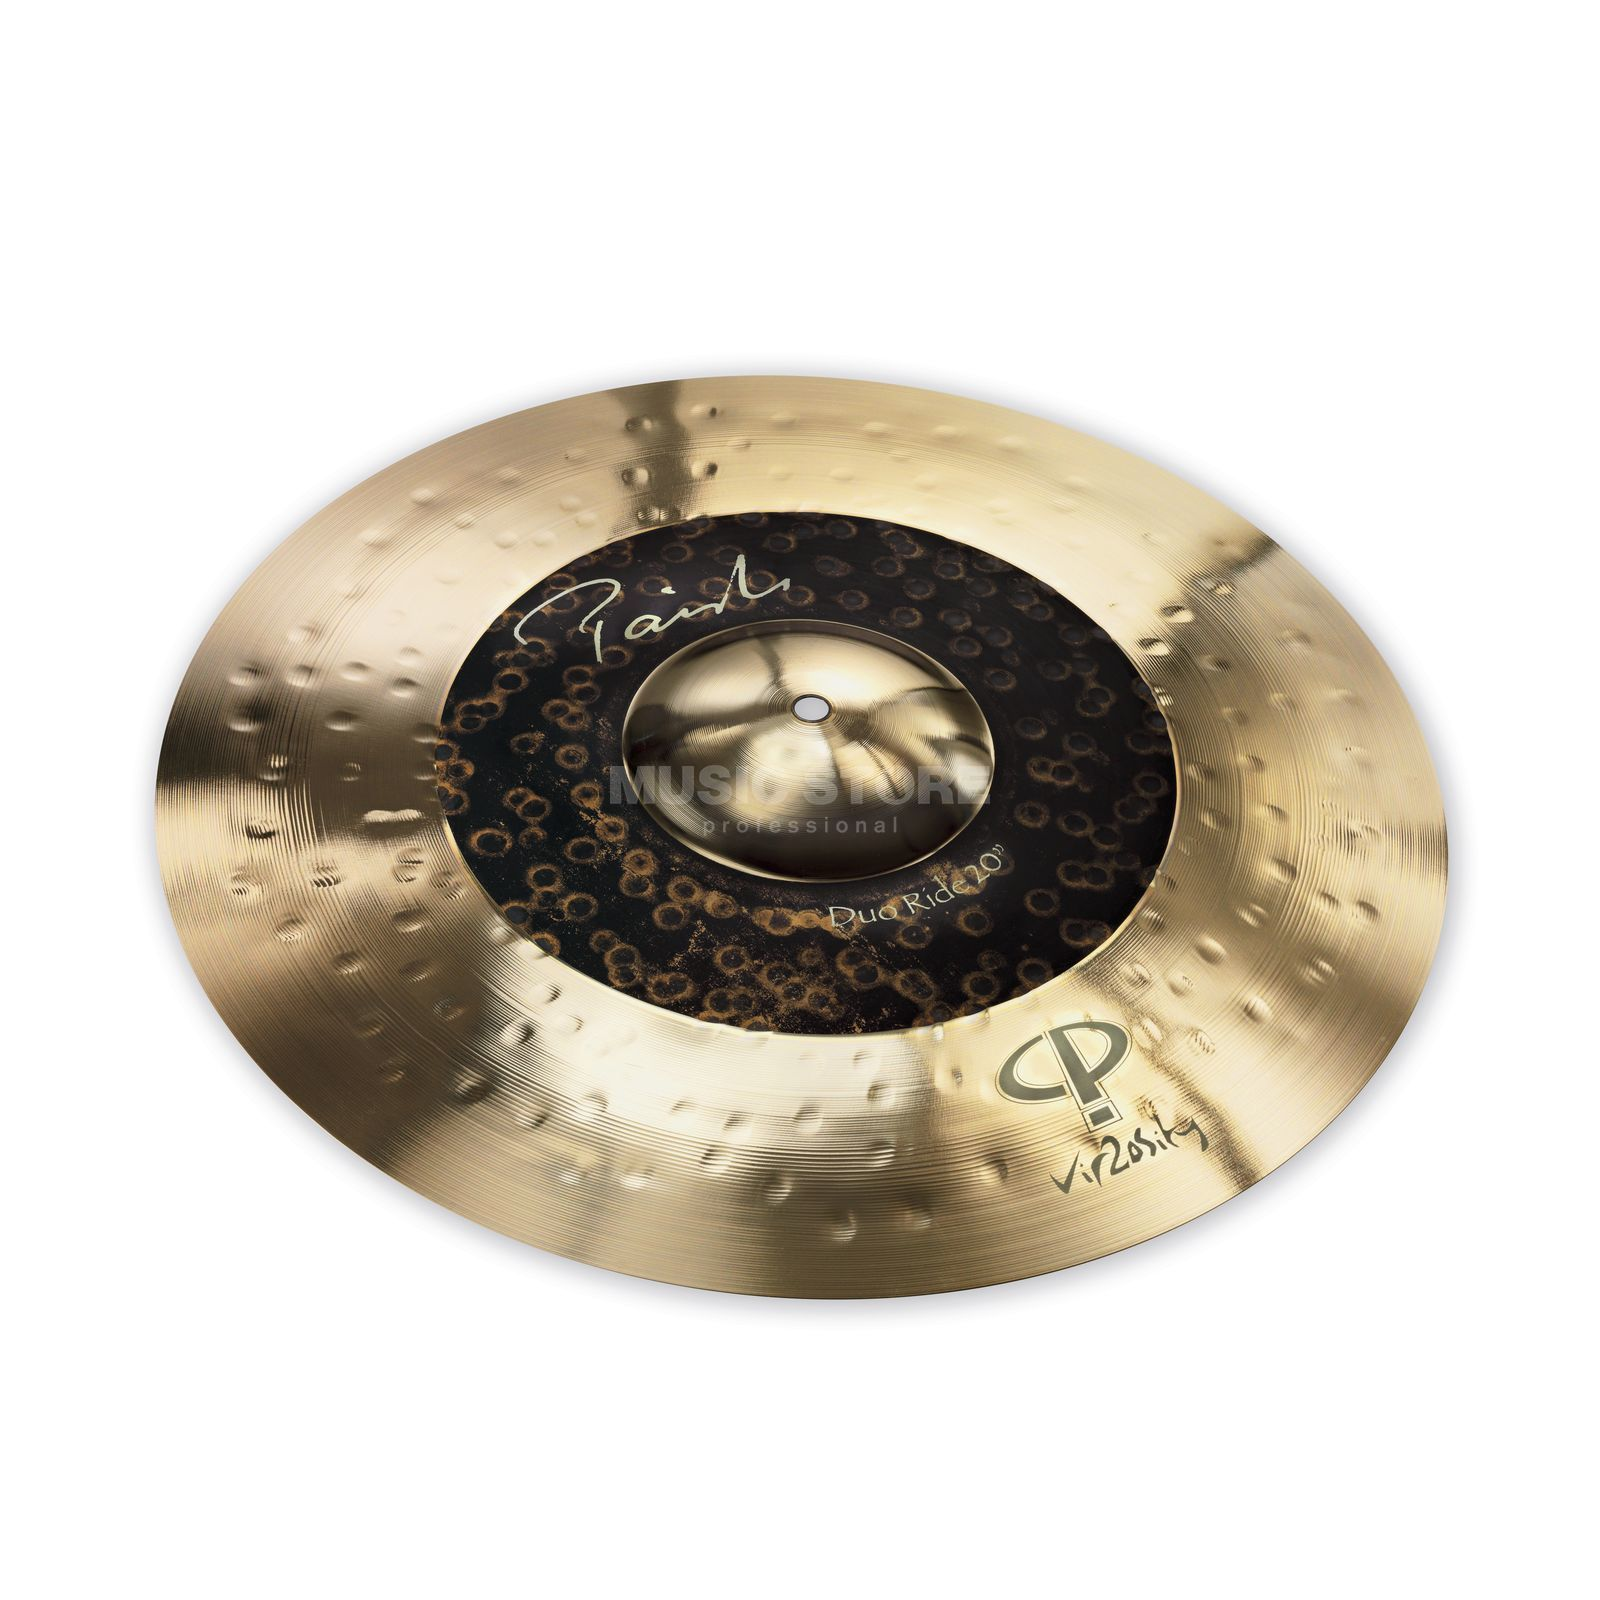 "Paiste Signature Duo Ride 20"" Vir2osity Product Image"